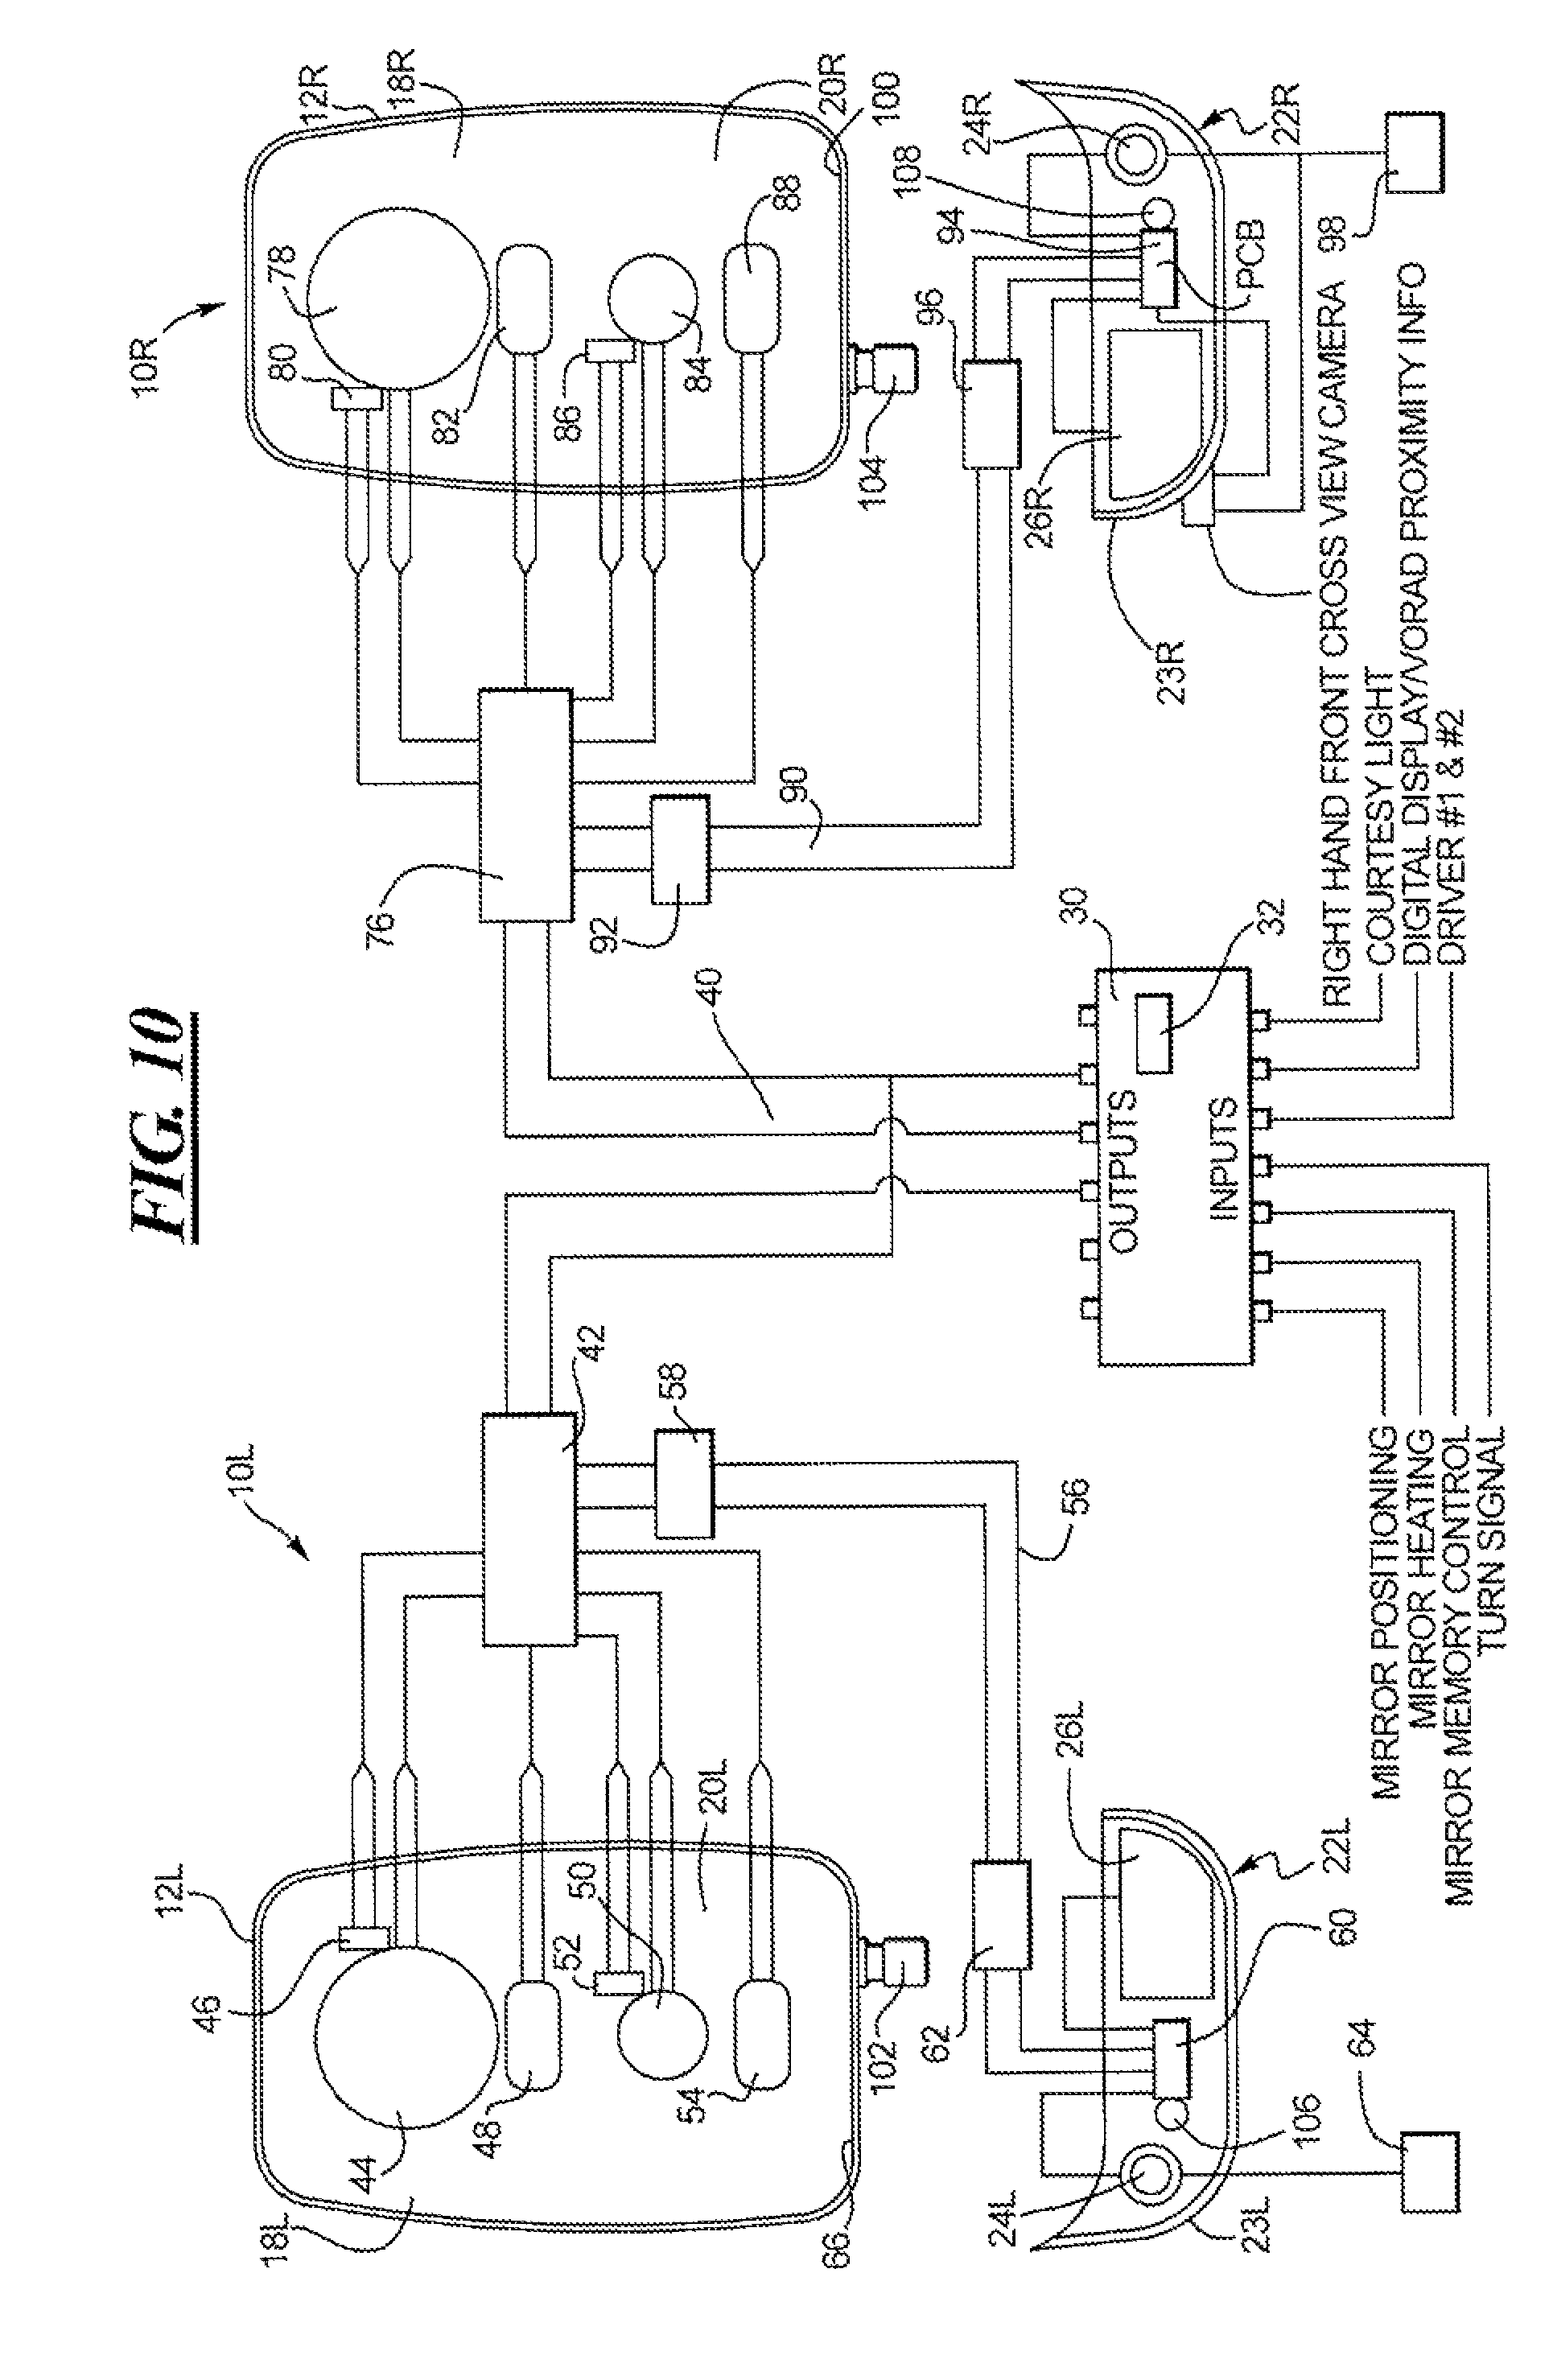 US08602573 20131210 D00007 patent us8602573 electronics module for mirrors google patents velvac wiring diagram at eliteediting.co